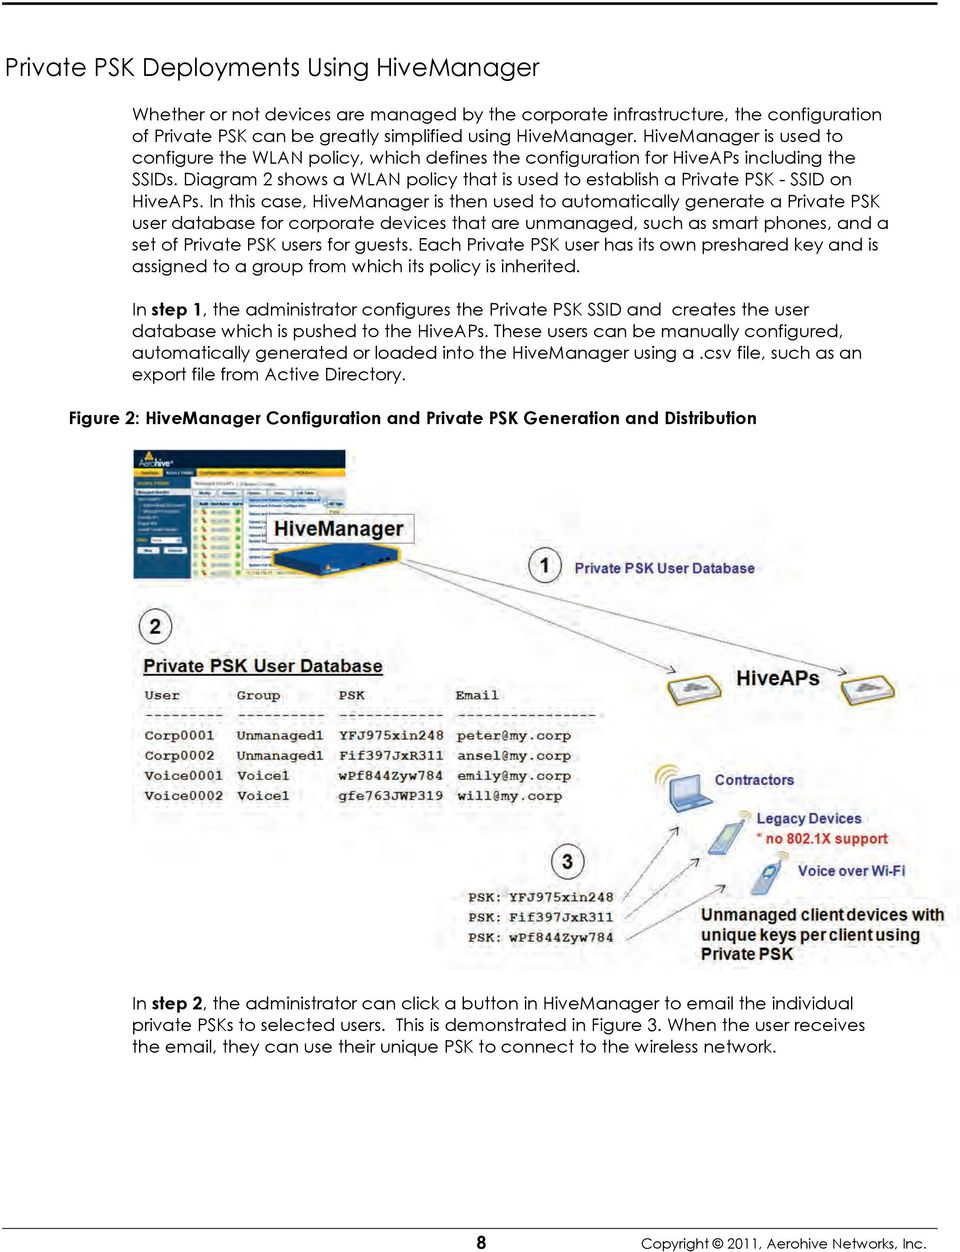 Diagram 2 shows a WLAN policy that is used to establish a Private PSK - SSID on HiveAPs.